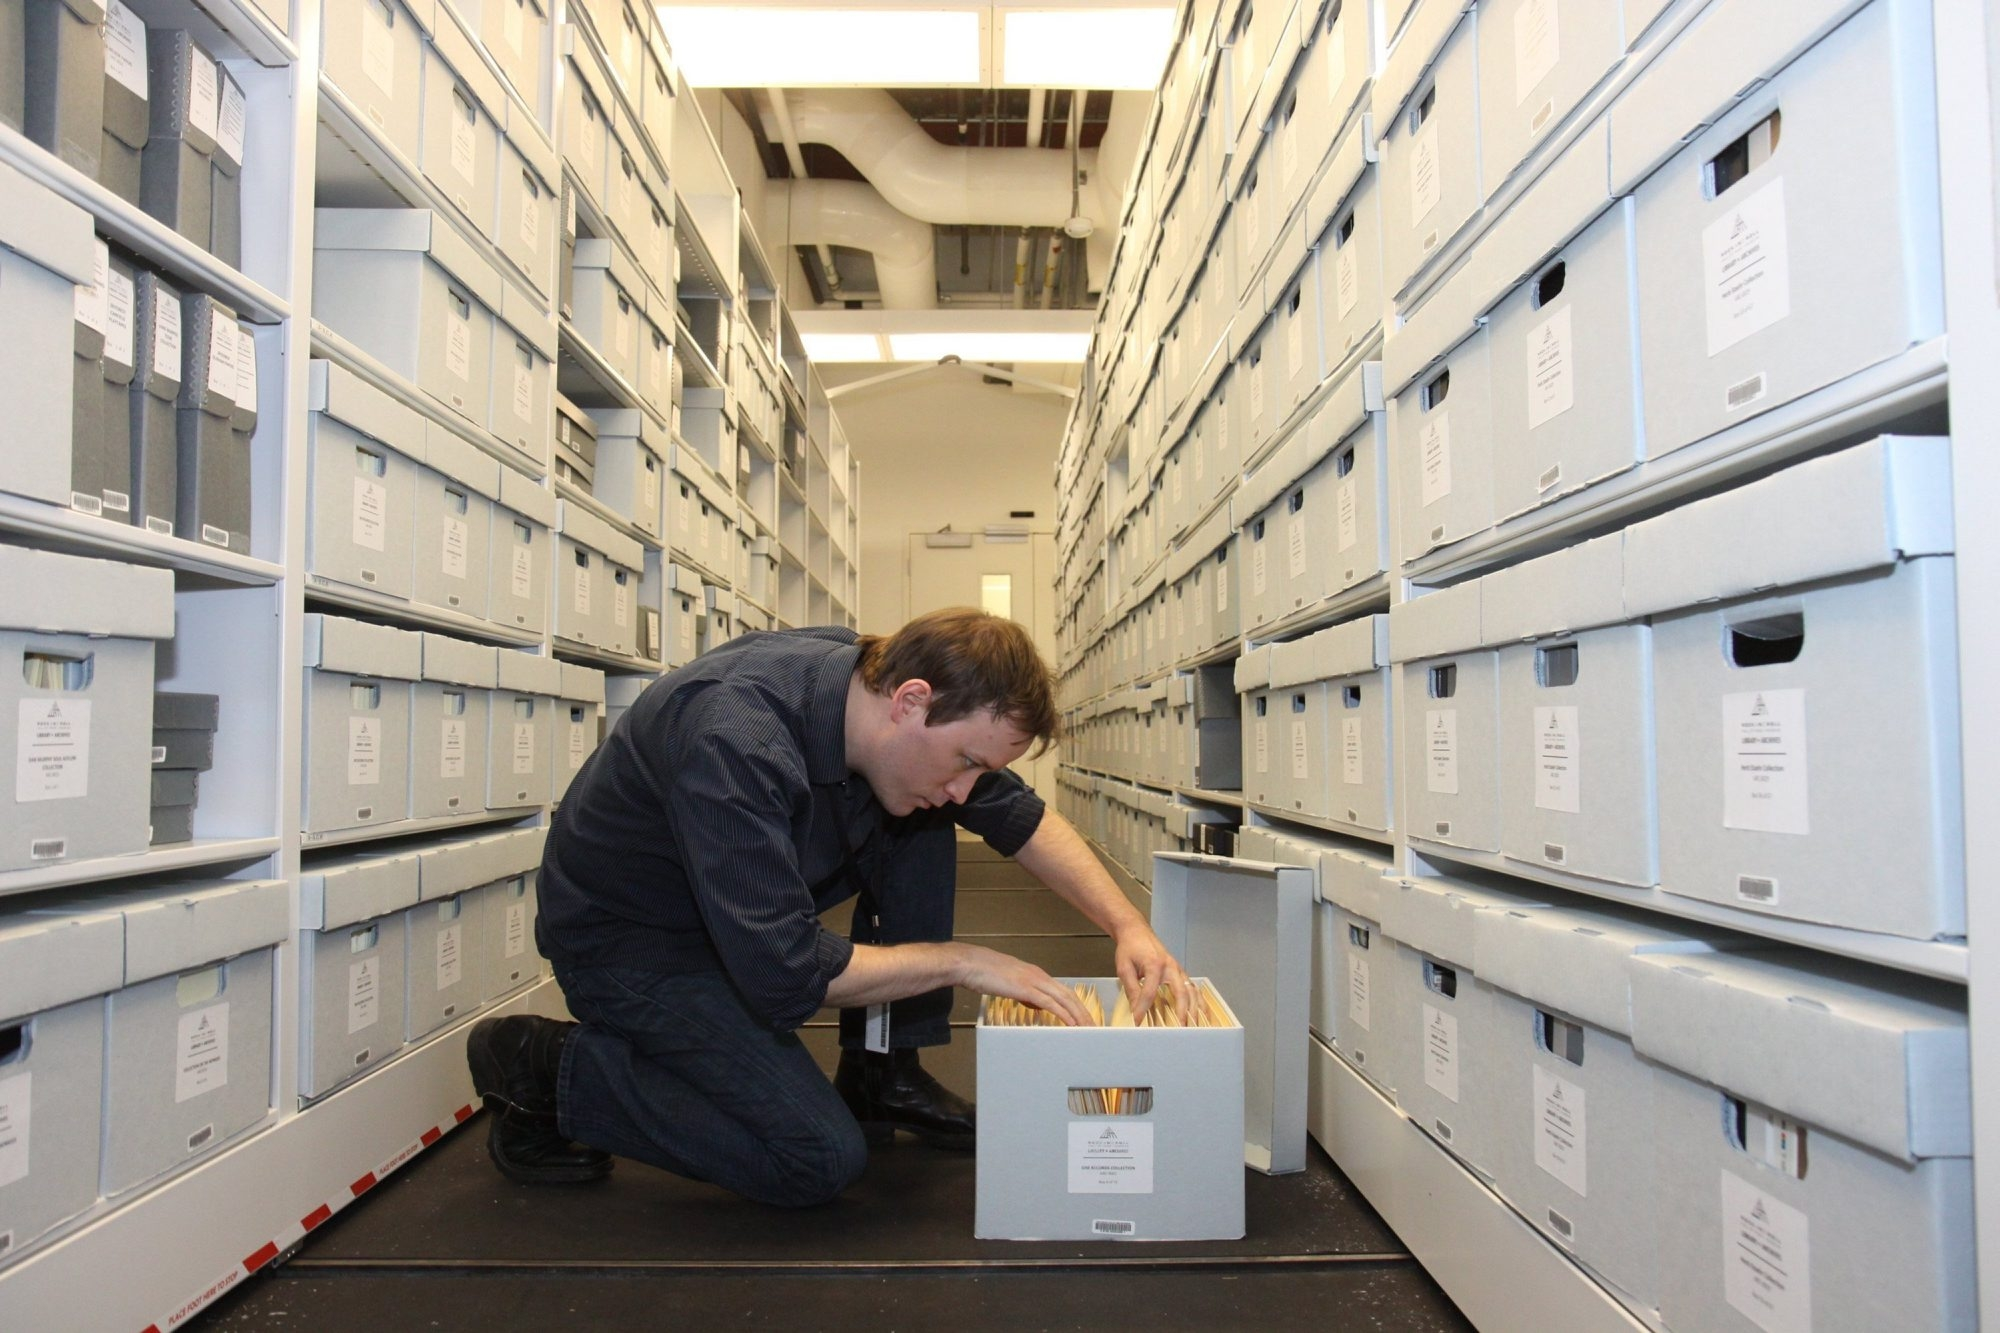 Andy Leach, the director of the Library and Archives of the Rock and Roll Hall of Fame, looks through the collection.